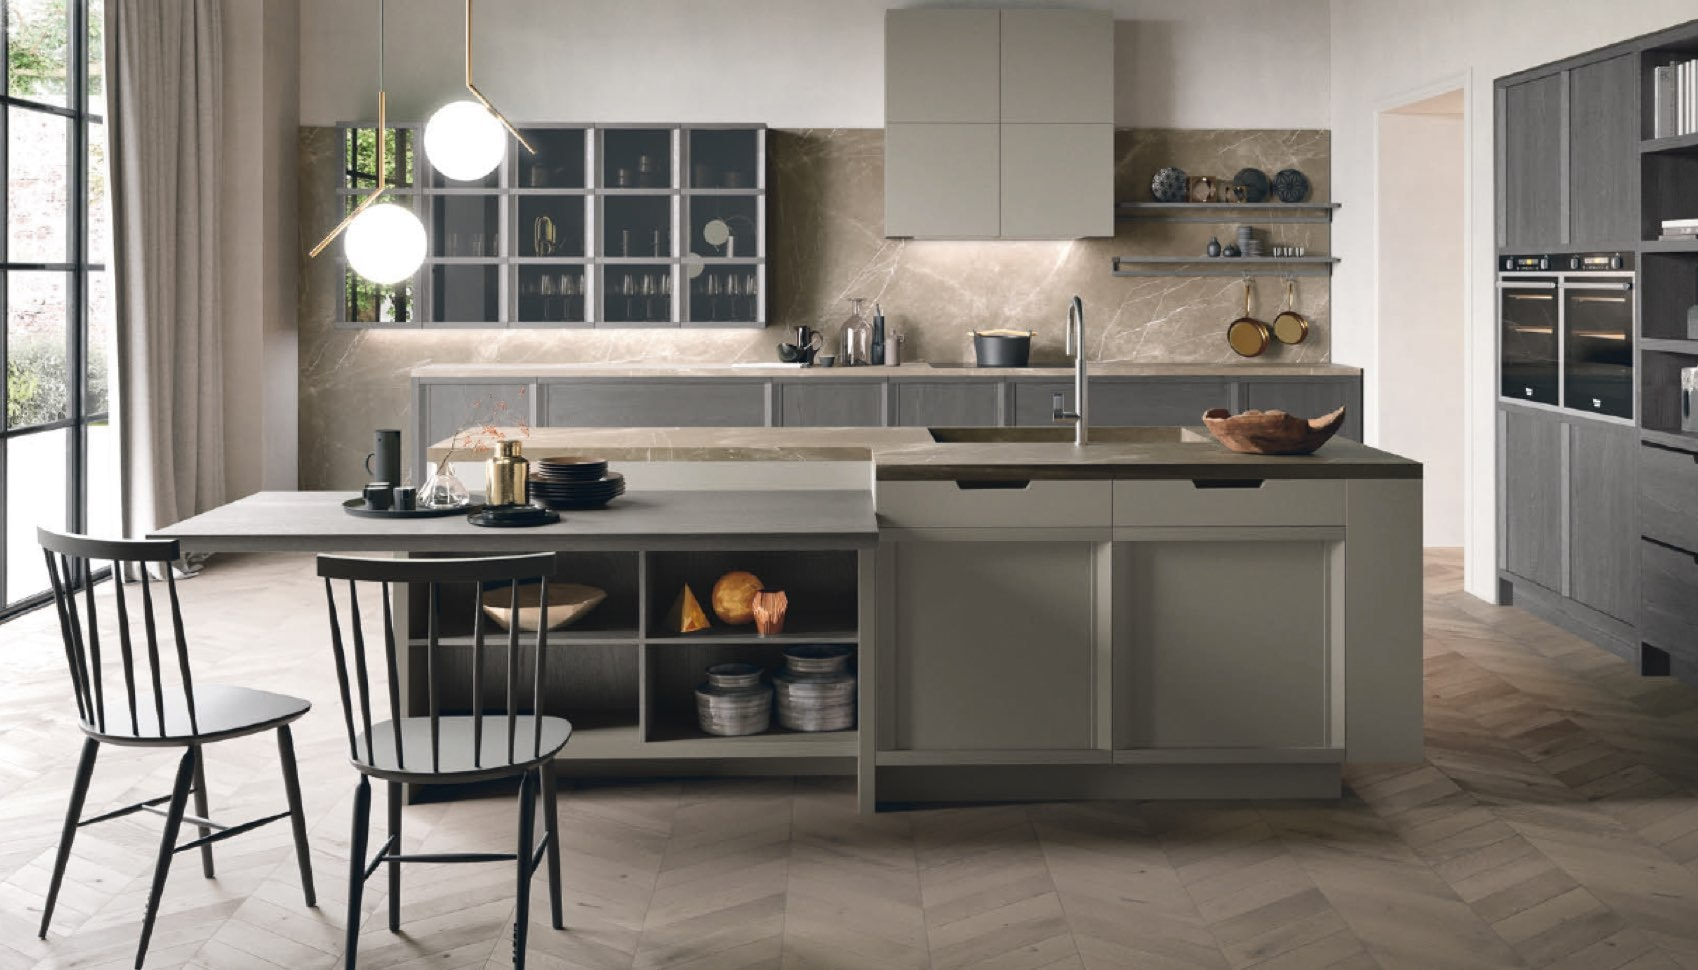 Stosa Cucine Modern And Classic Kitchens For Over 50 Years